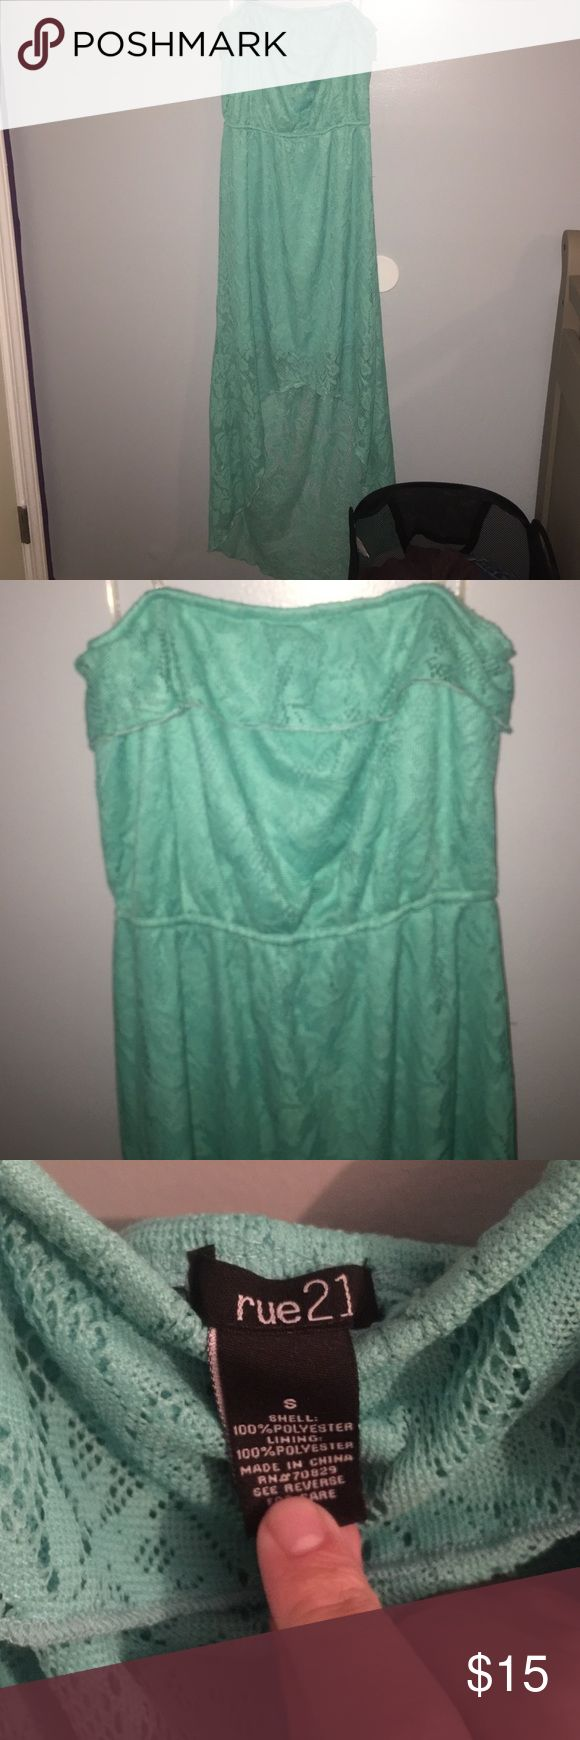 Rue 21 strapless hi-lo dress NEVER WORN!! Teal Strapples Hi-Lo dress from Rue 21. Size Small. 15 obo Rue 21 Dresses High Low